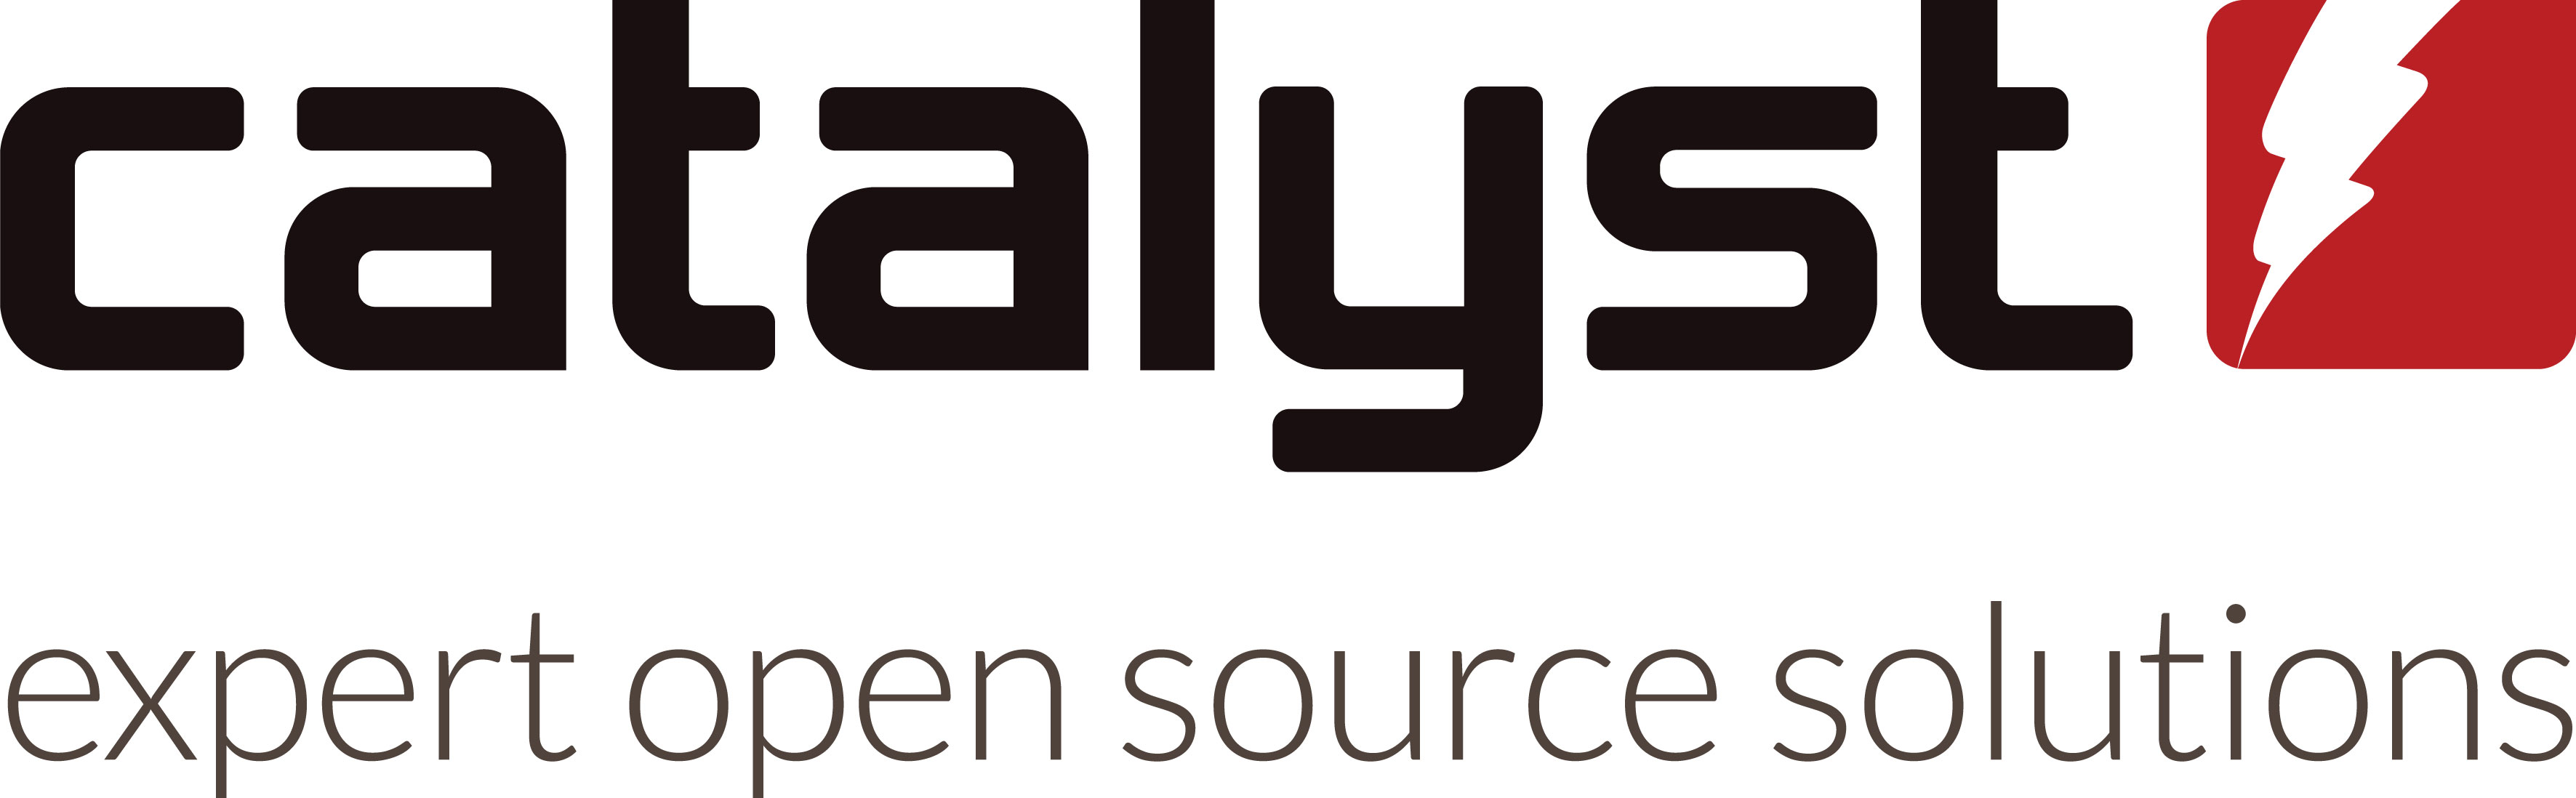 Catalyst - expert open source solutions